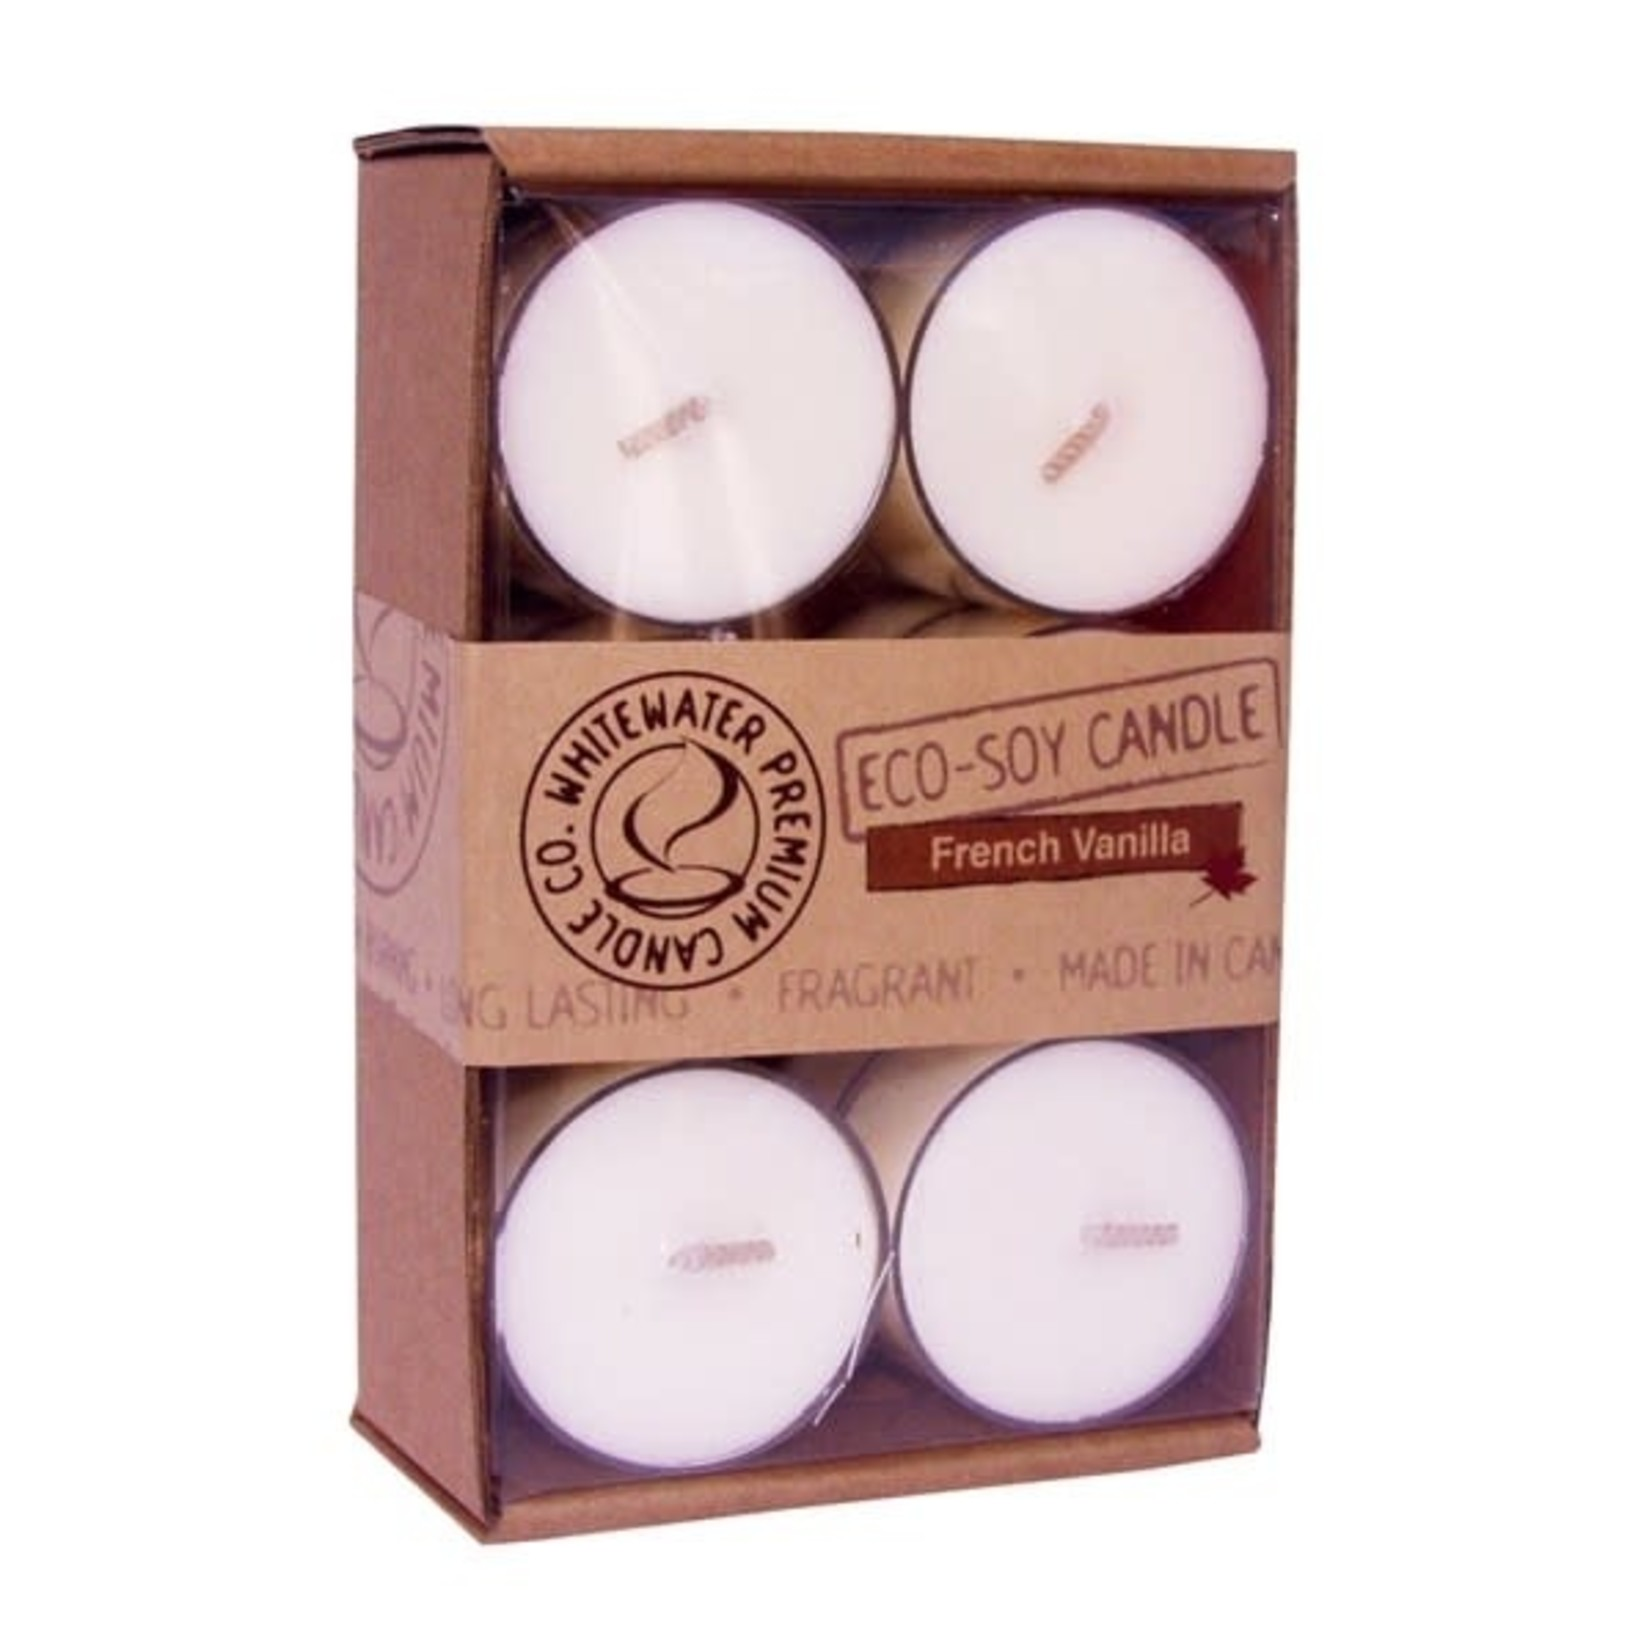 Whitewater Candles Whitewater Soy Candles